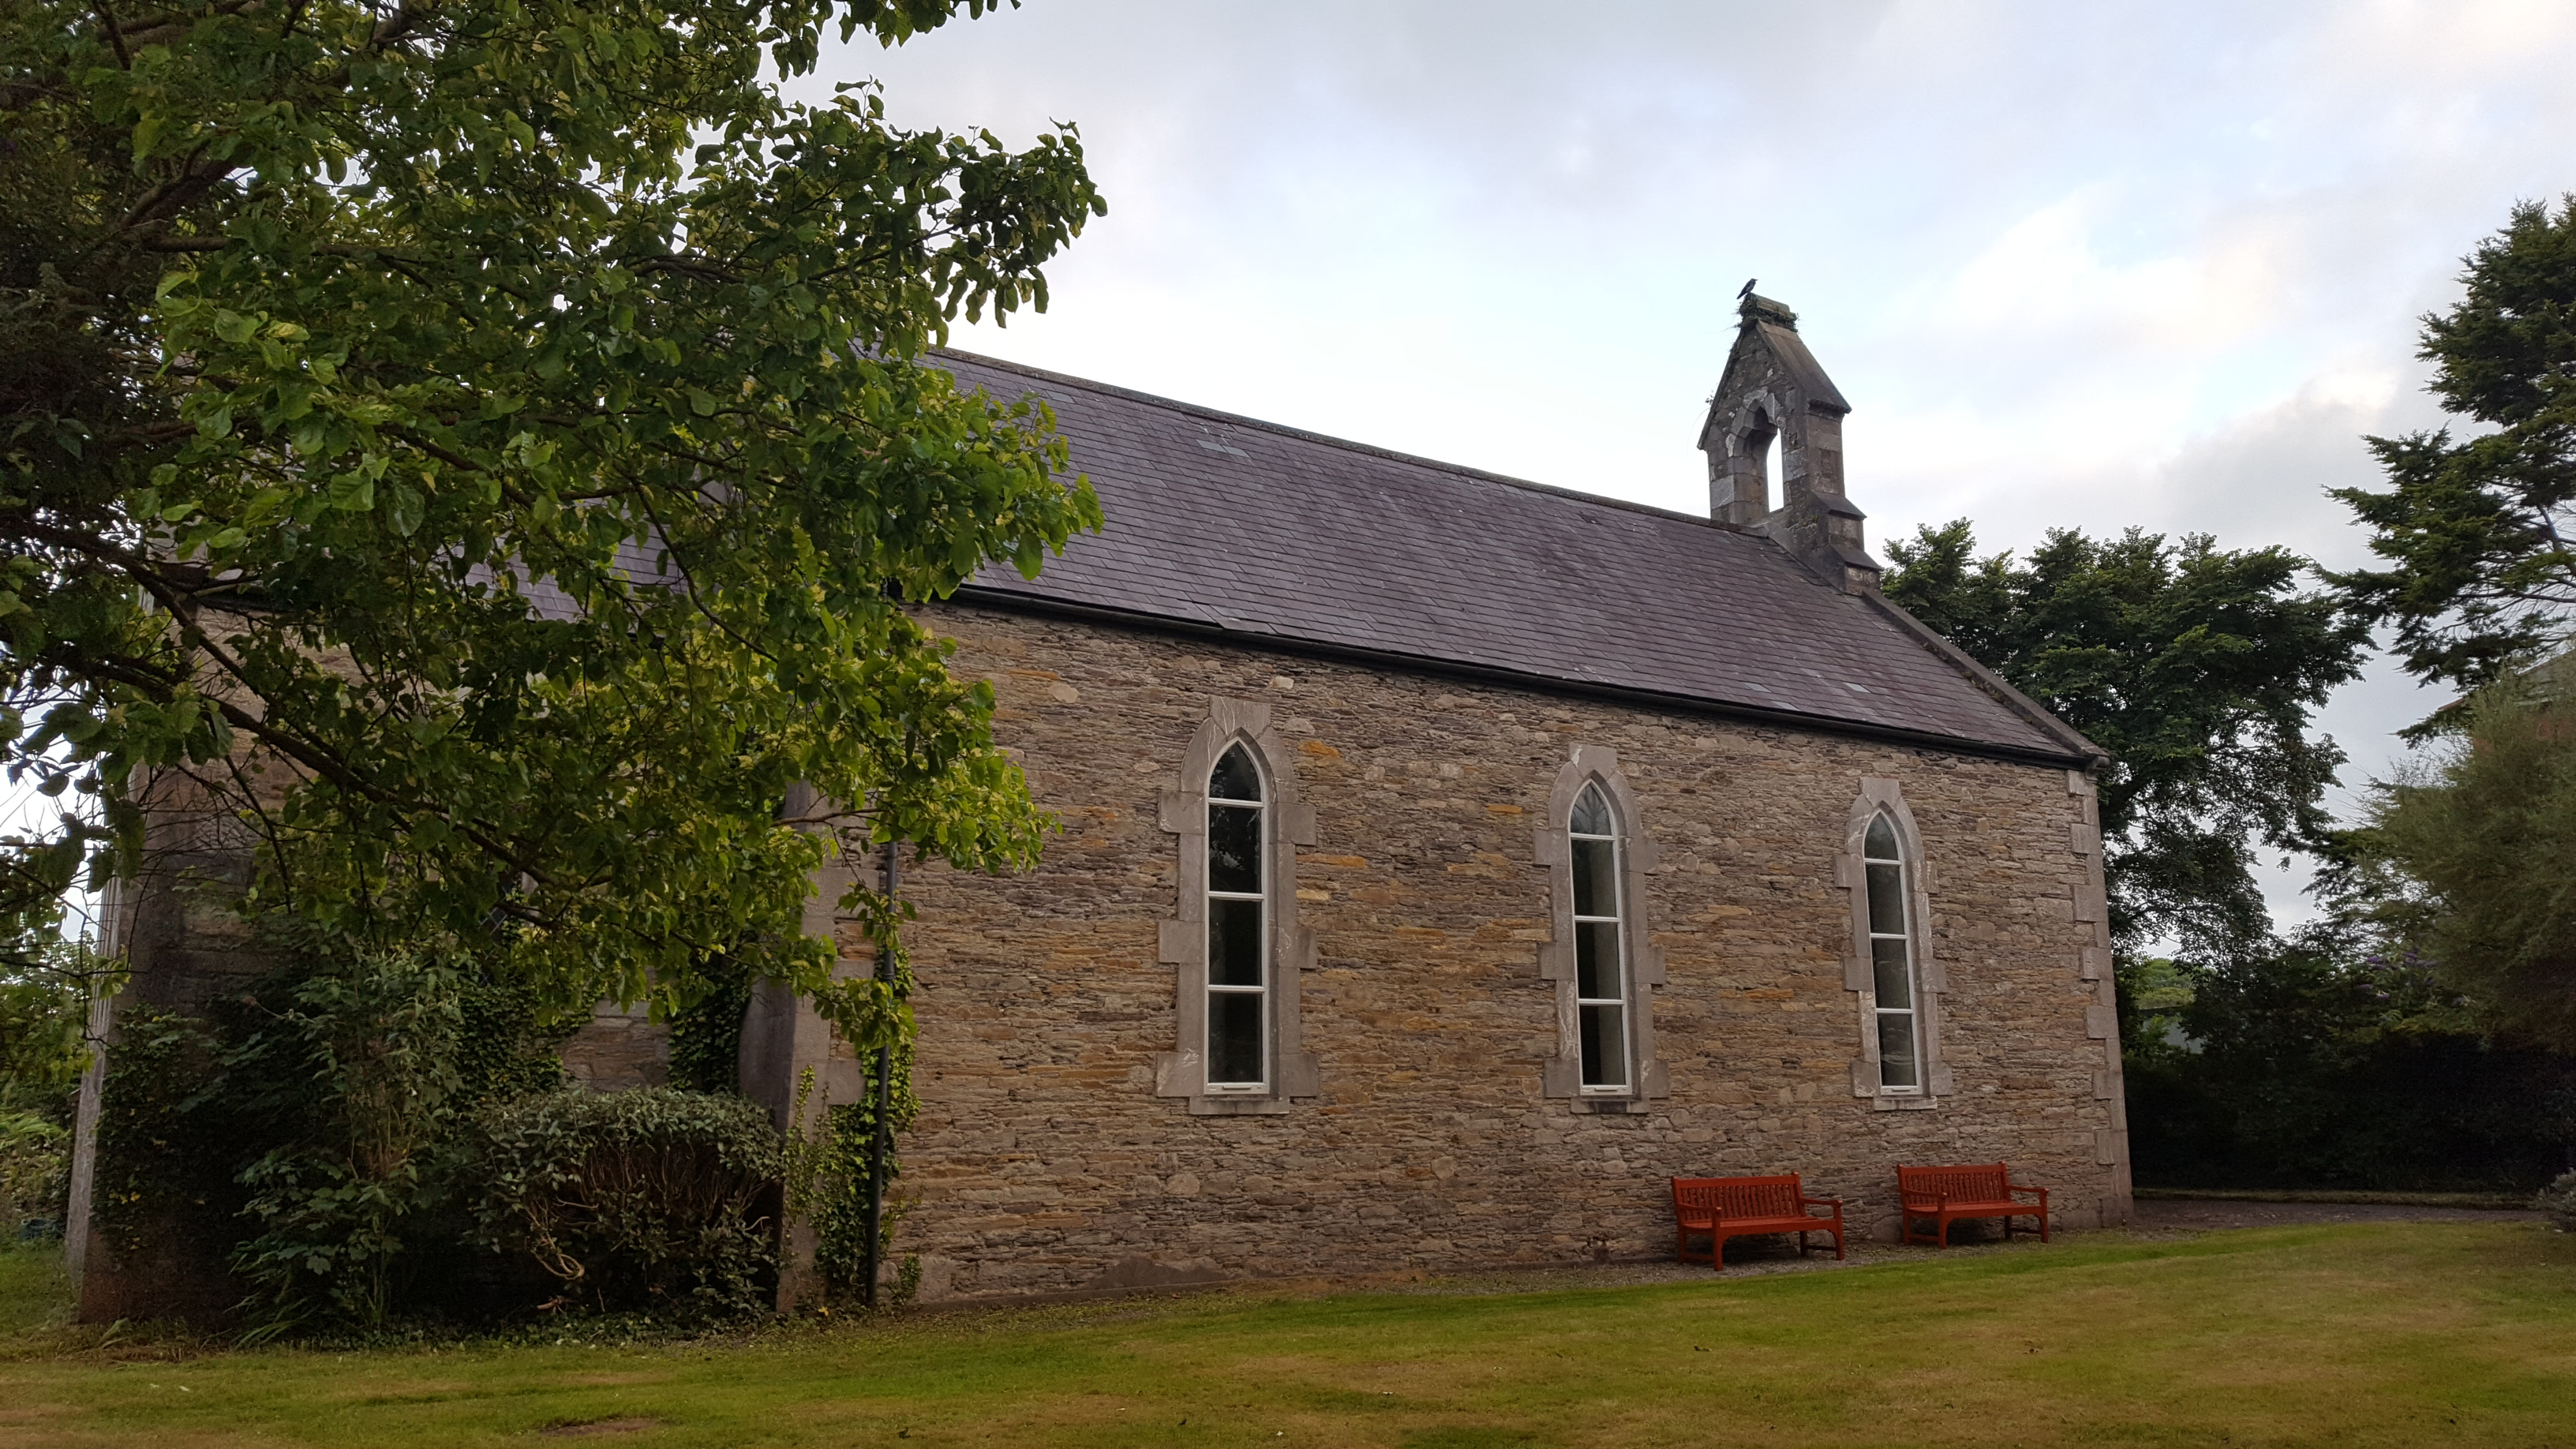 CDA Finalise Purchase of St. Peter's Church & Grounds